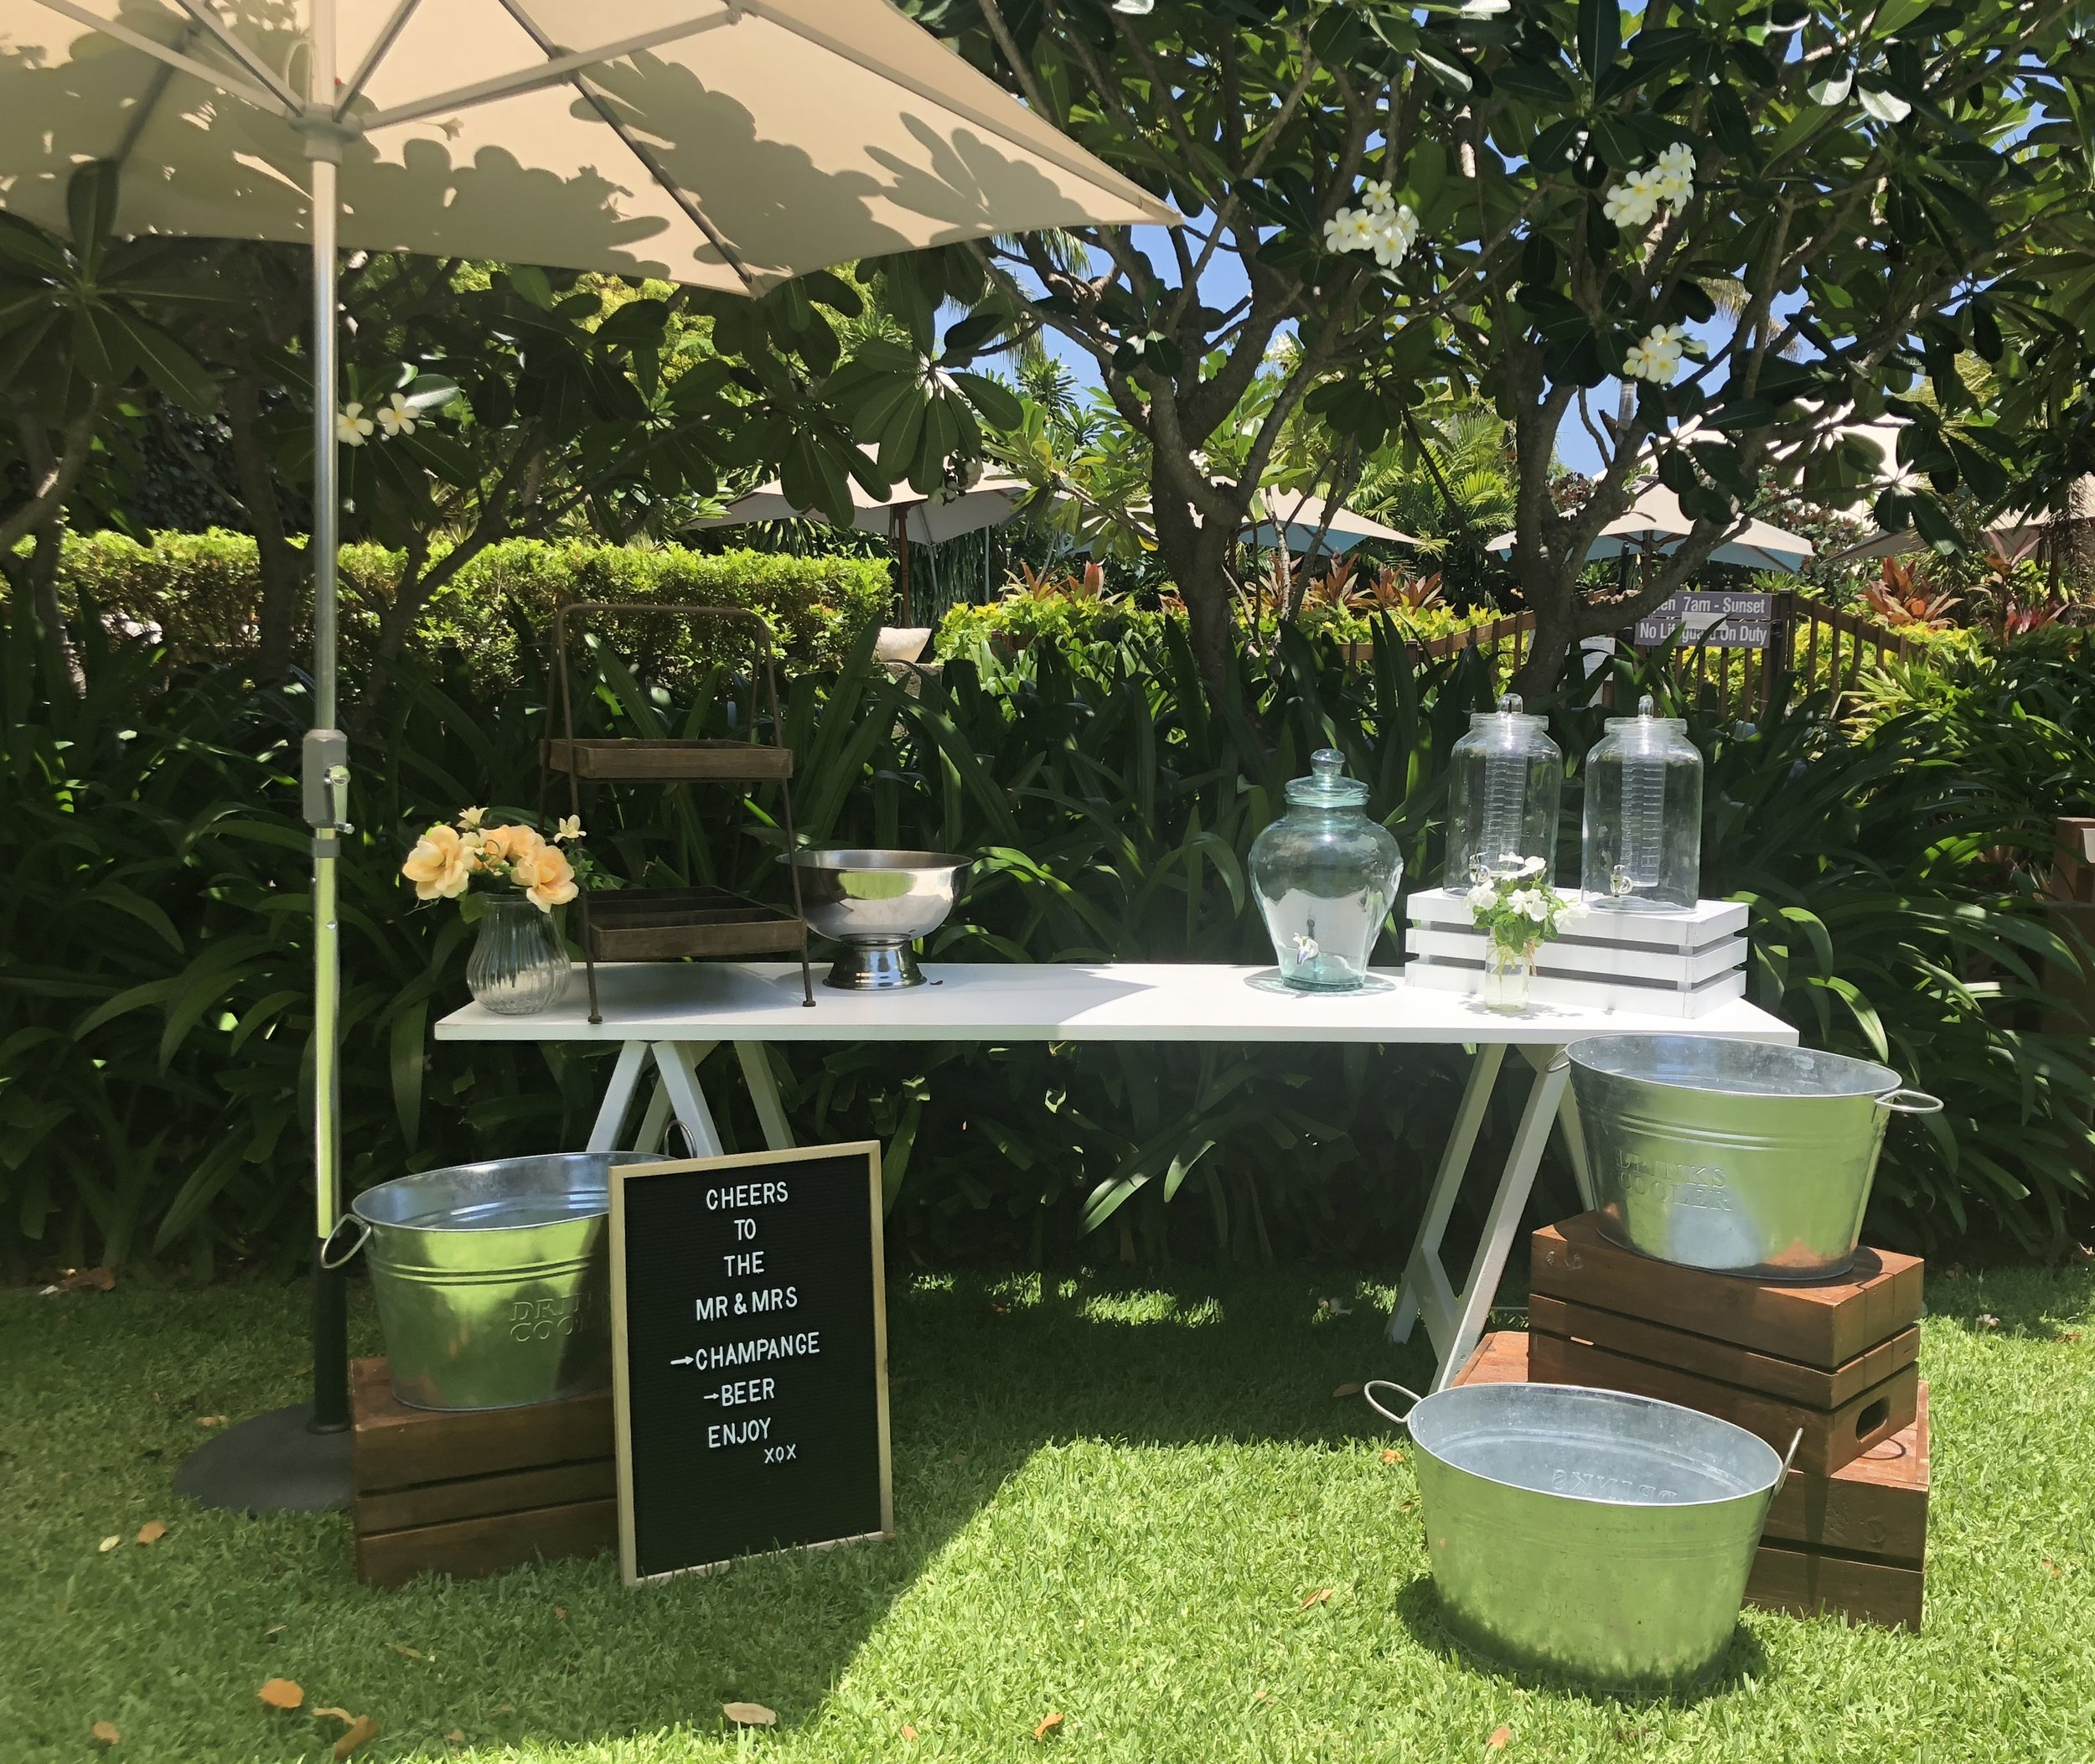 White wooden trestle table bar: $220 - Just add your favourite drinks and ice. Includes:White wooden tableX3 Metal tubsX4 CratesX3 Drink dispensersDrink stand or trayMarket umbrellaChampagne bowlLetterboard